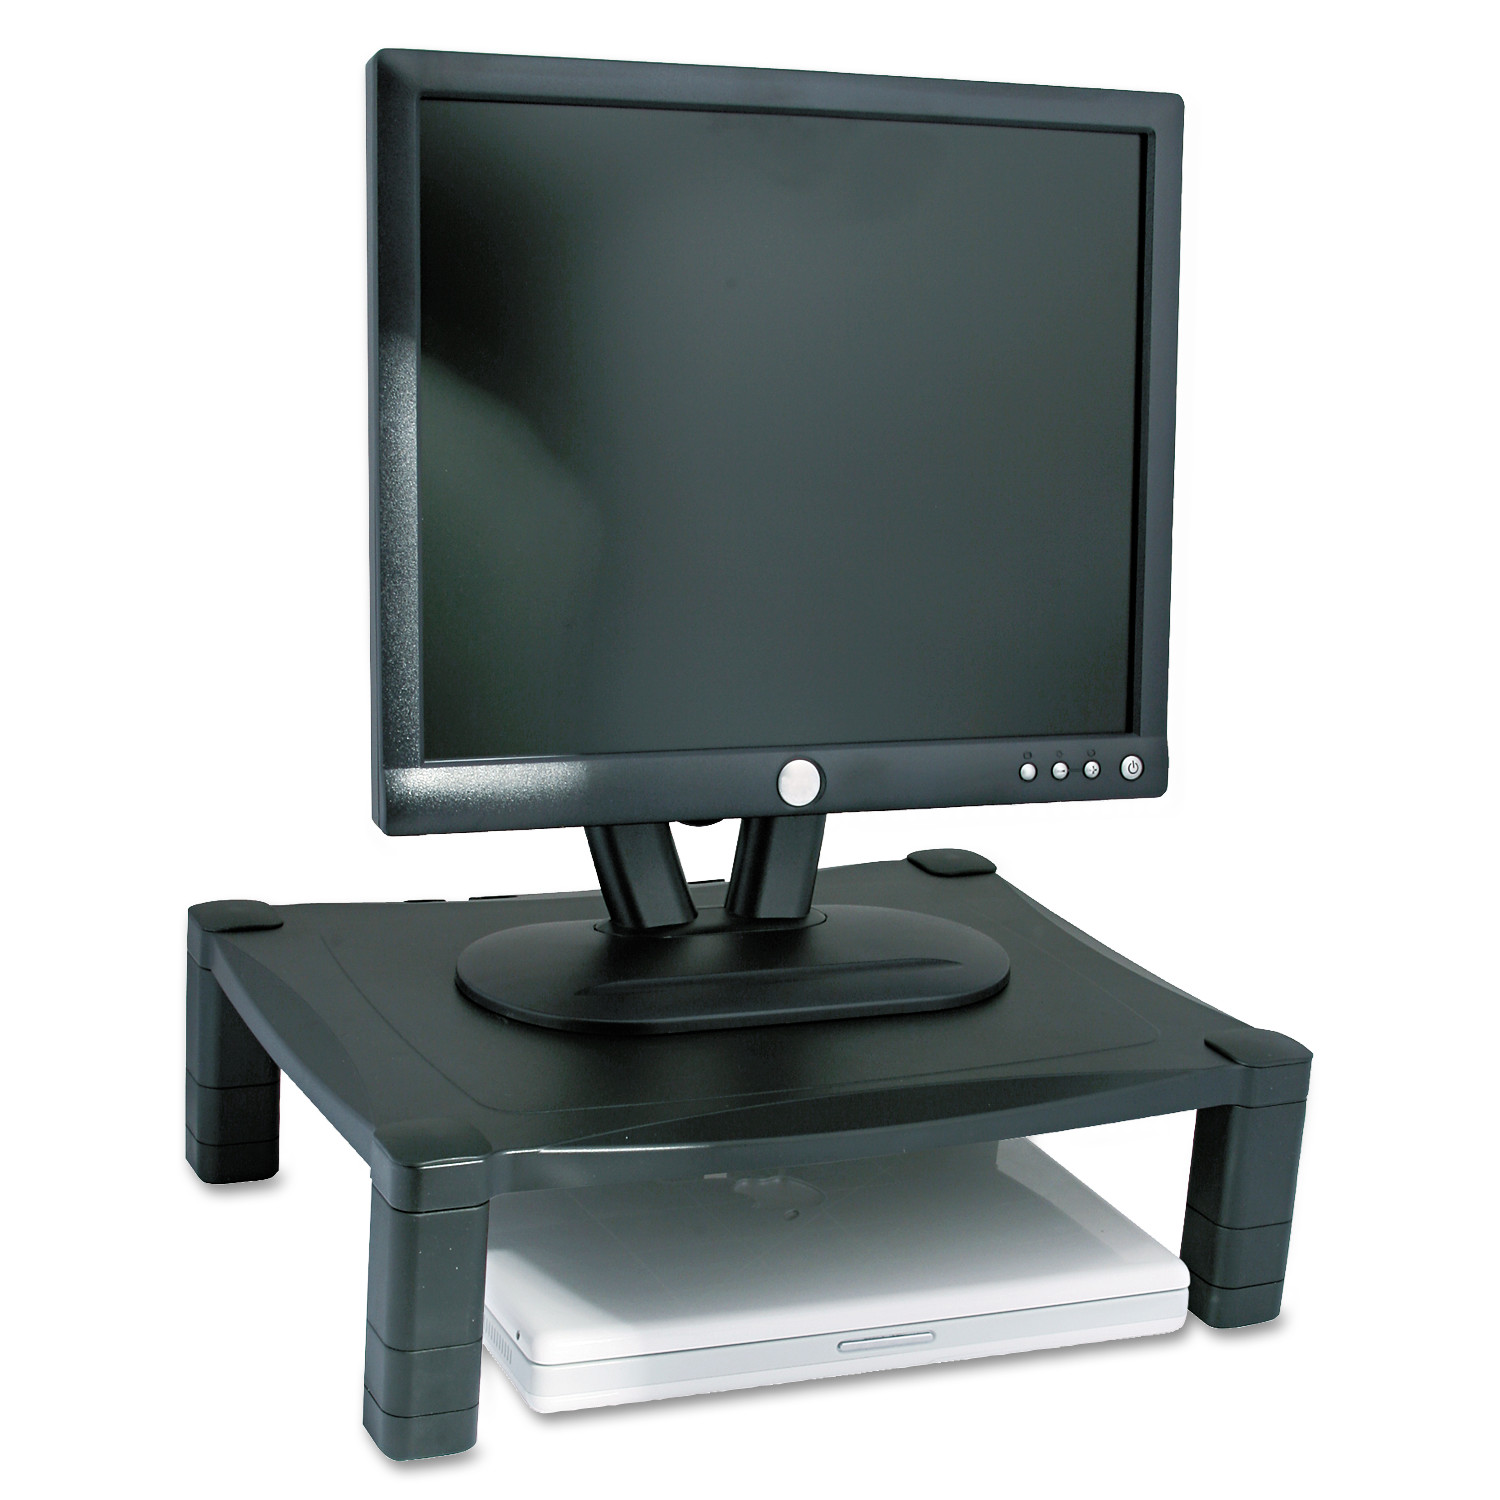 Kantek Single Level Height-Adjustable Stand, 17 x 13 1/4 x 3 to 6 1/2, Black